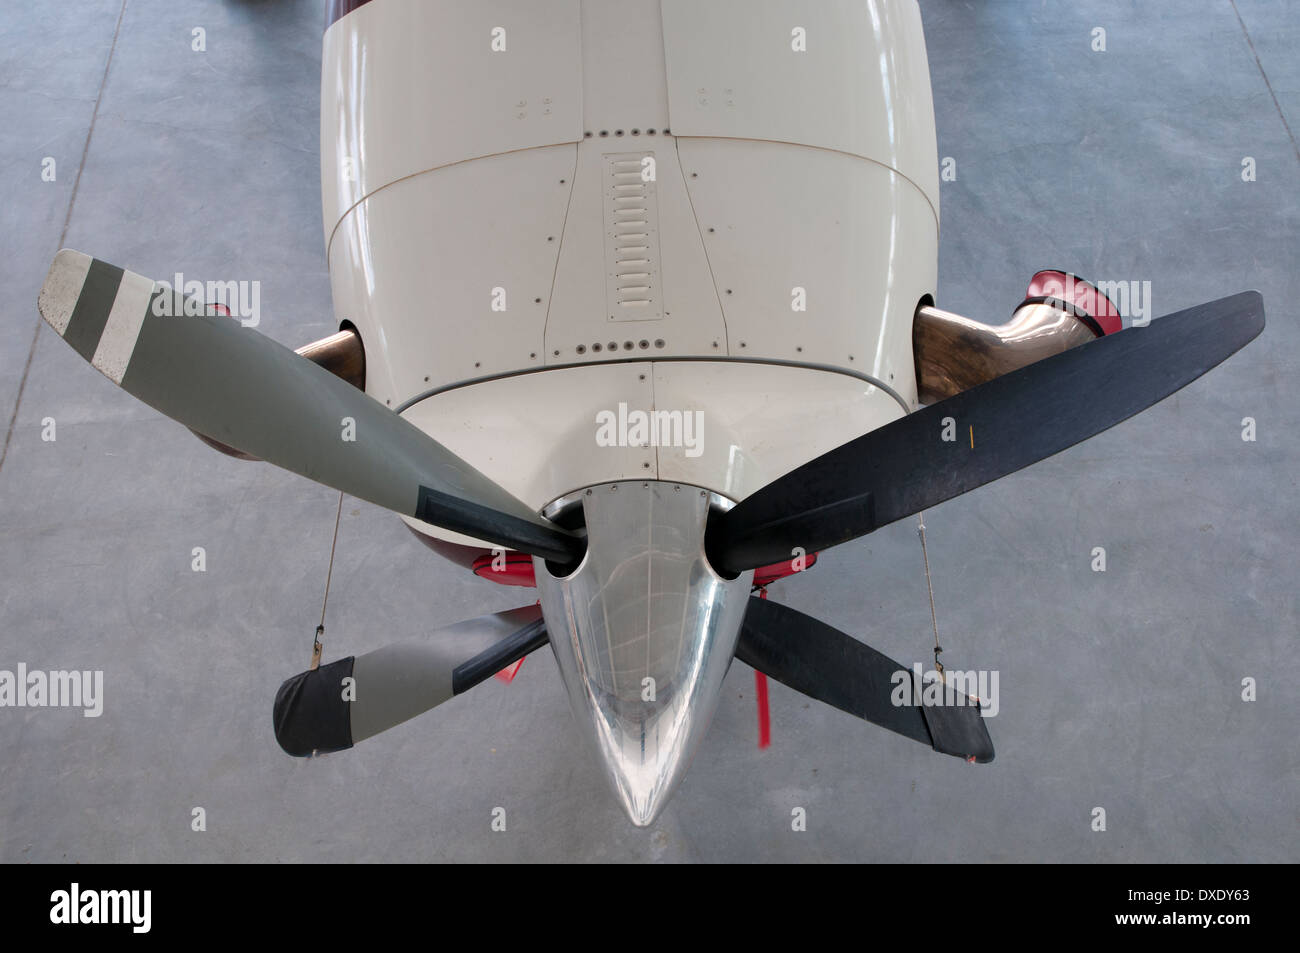 Airplane engine and propeller - Stock Image